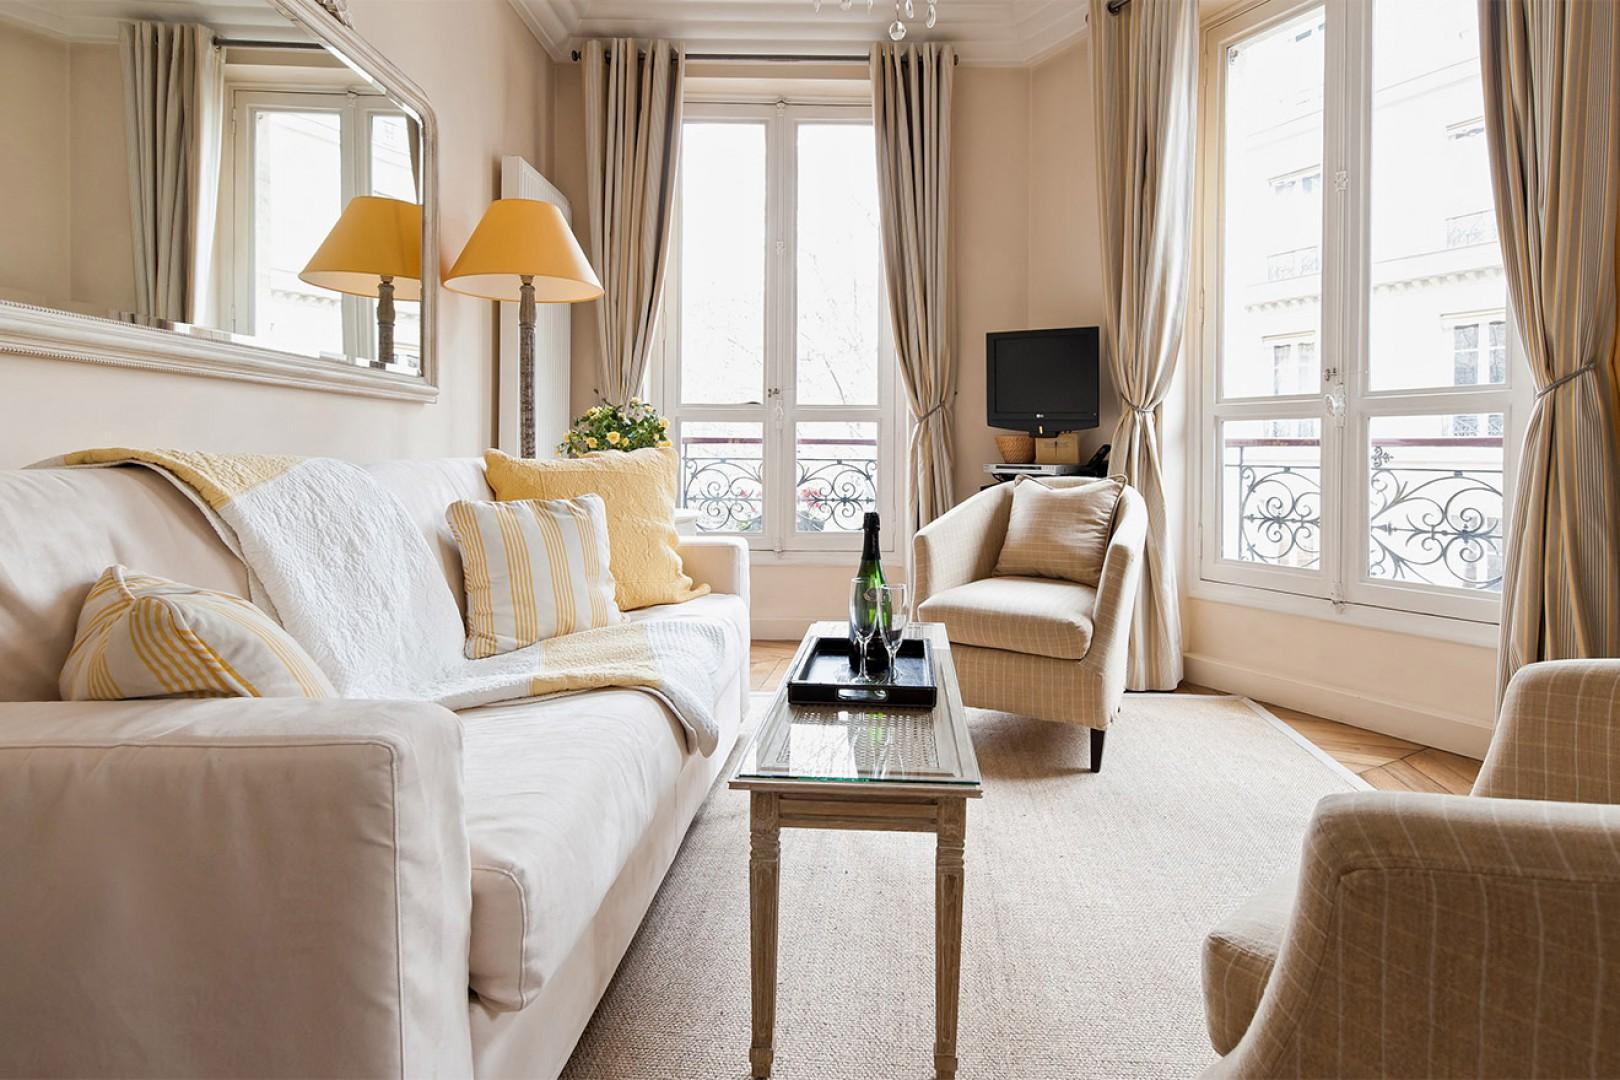 The spacious and elegant apartment is decorated in a charming, elegant French style.